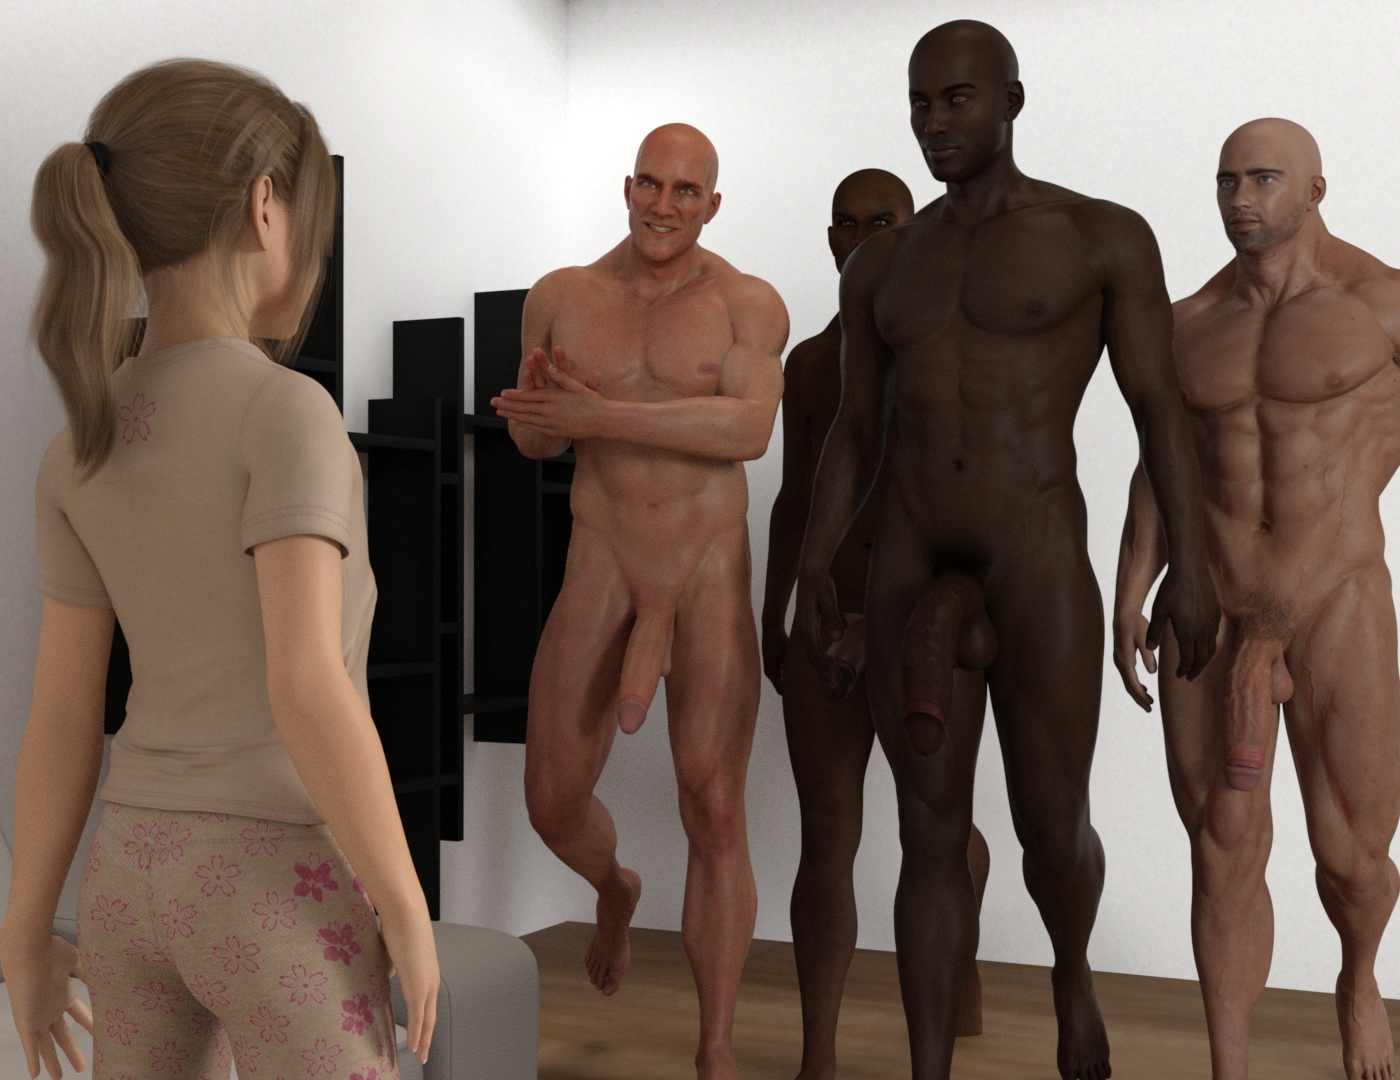 1girl 3dcg 4boys age_difference bald barefoot blonde_hair brown_skin dark_skinned_male gangbang group_sex huge_penis kawaii multiple_boys navel nipples nude penis photorealistic ponytail pubic_hair short_hair smile standing testicles uncensored